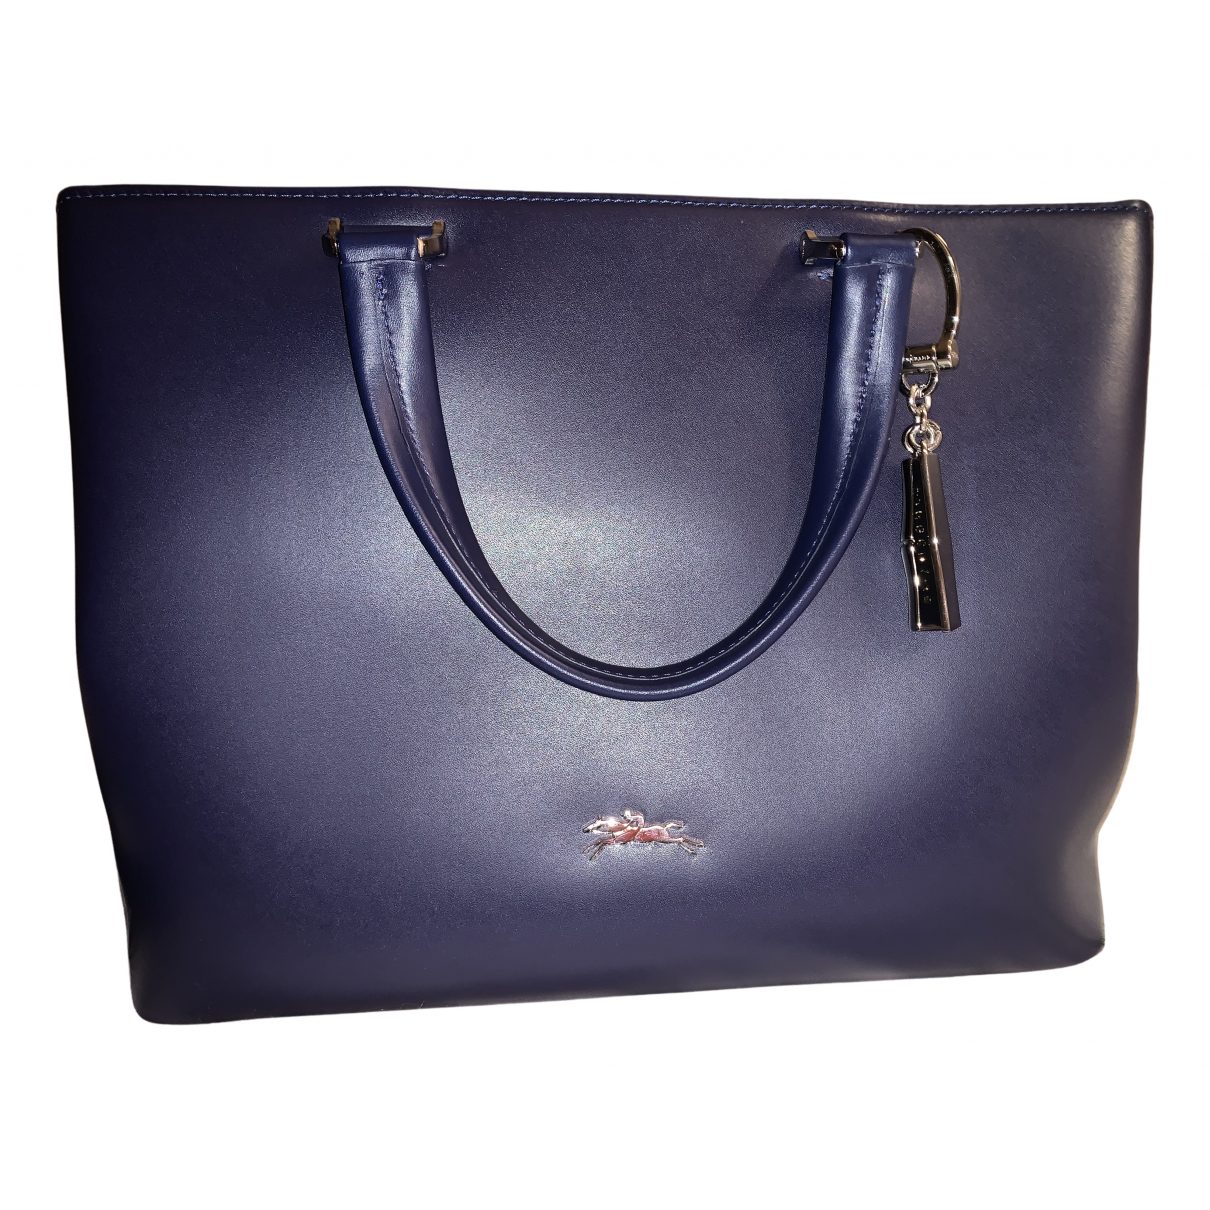 Longchamp N Blue Leather handbag for Women N